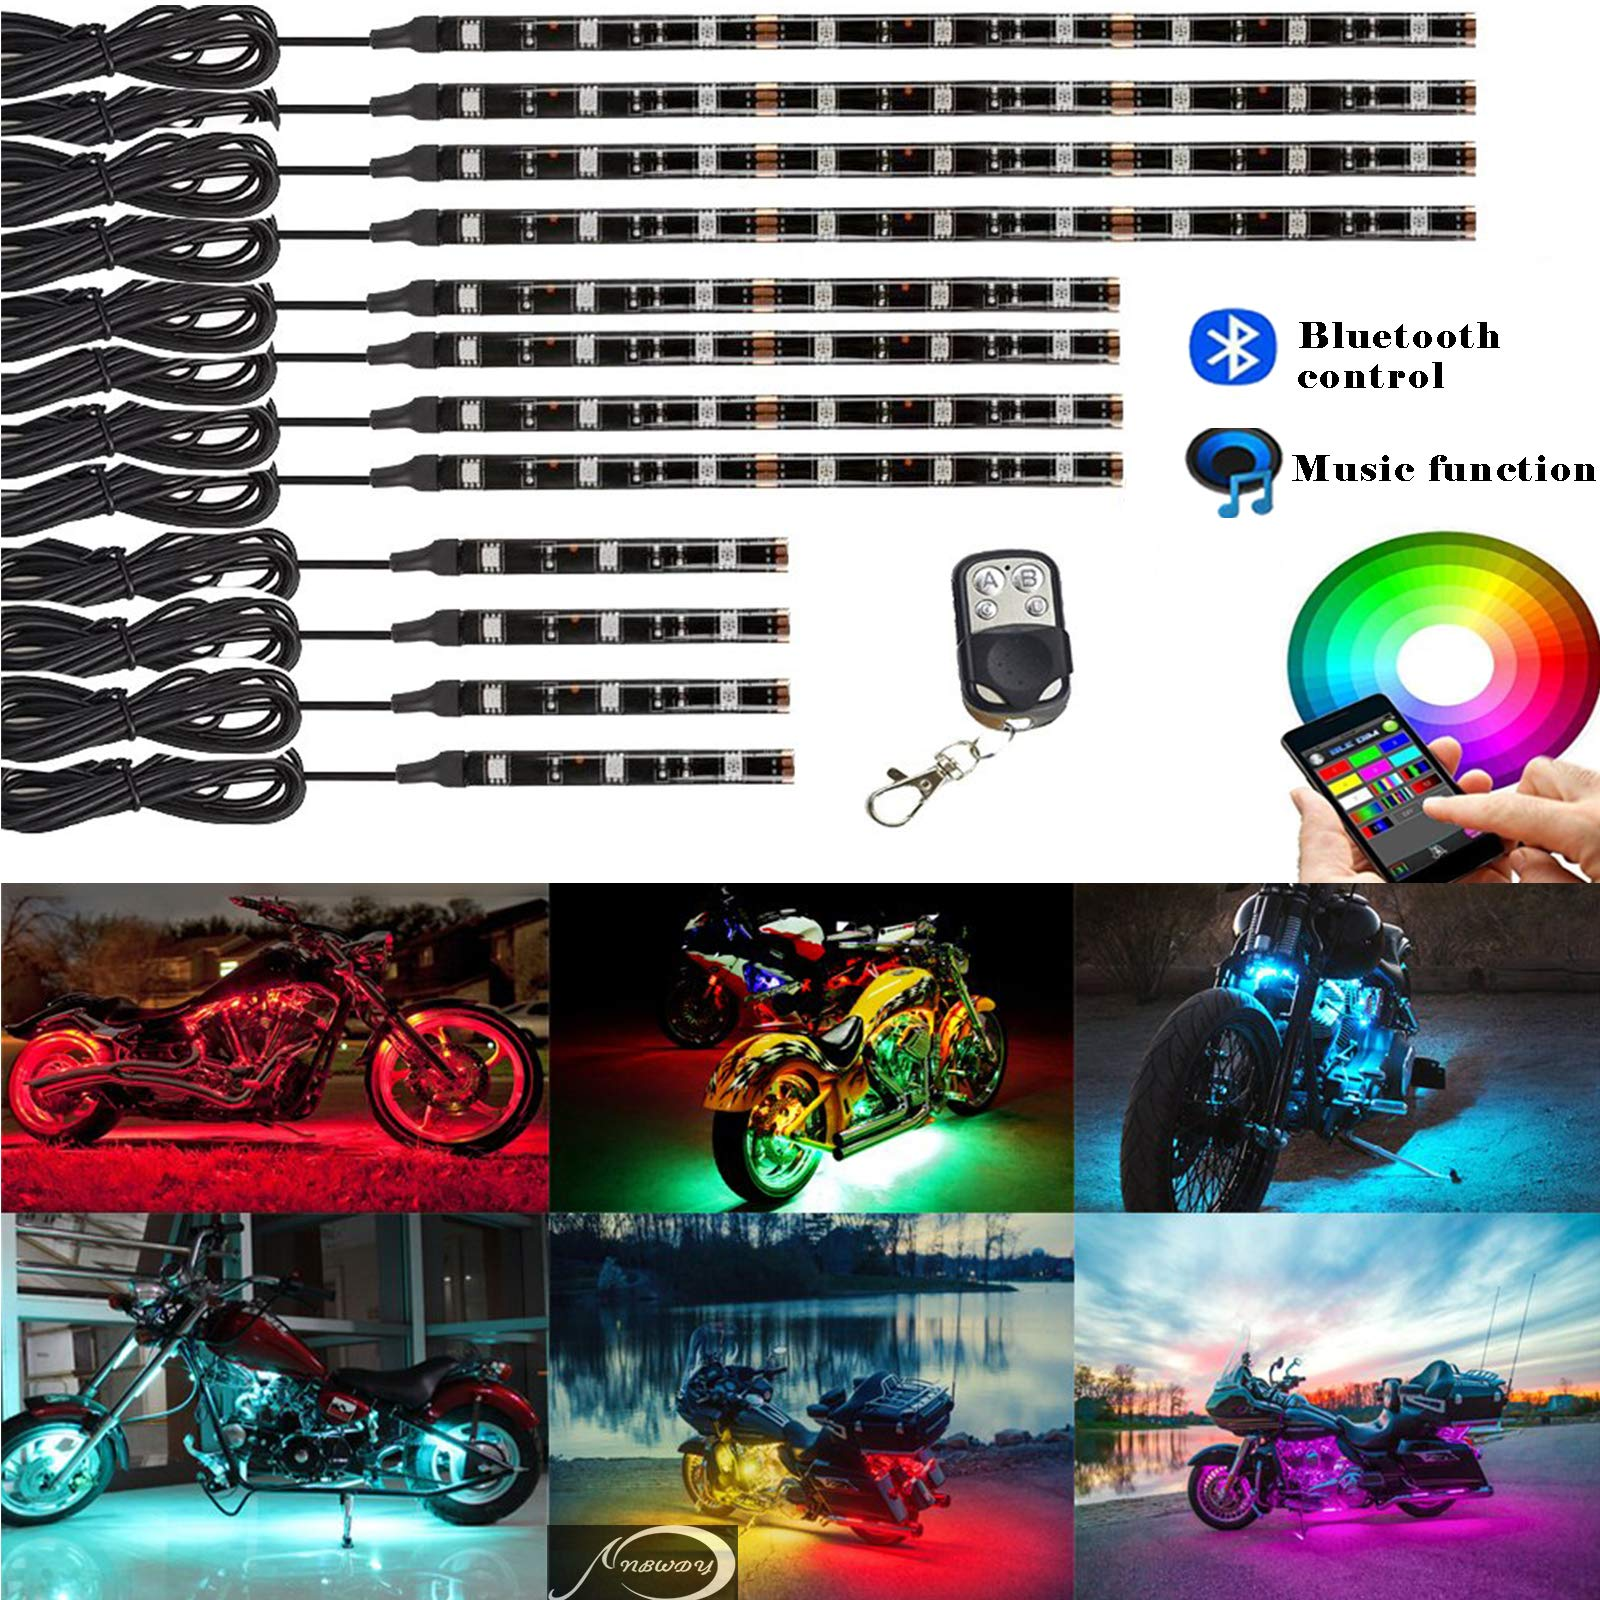 NBWDY 12Pcs Motorcycle LED Light Kit Strips Multi-Color Accent Glow Neon Lights Motorcycle Waterproof RF Bluetooth Controller led Motorcycle ATV Lights Music Sync for Motorcycle,ATV,Golf C